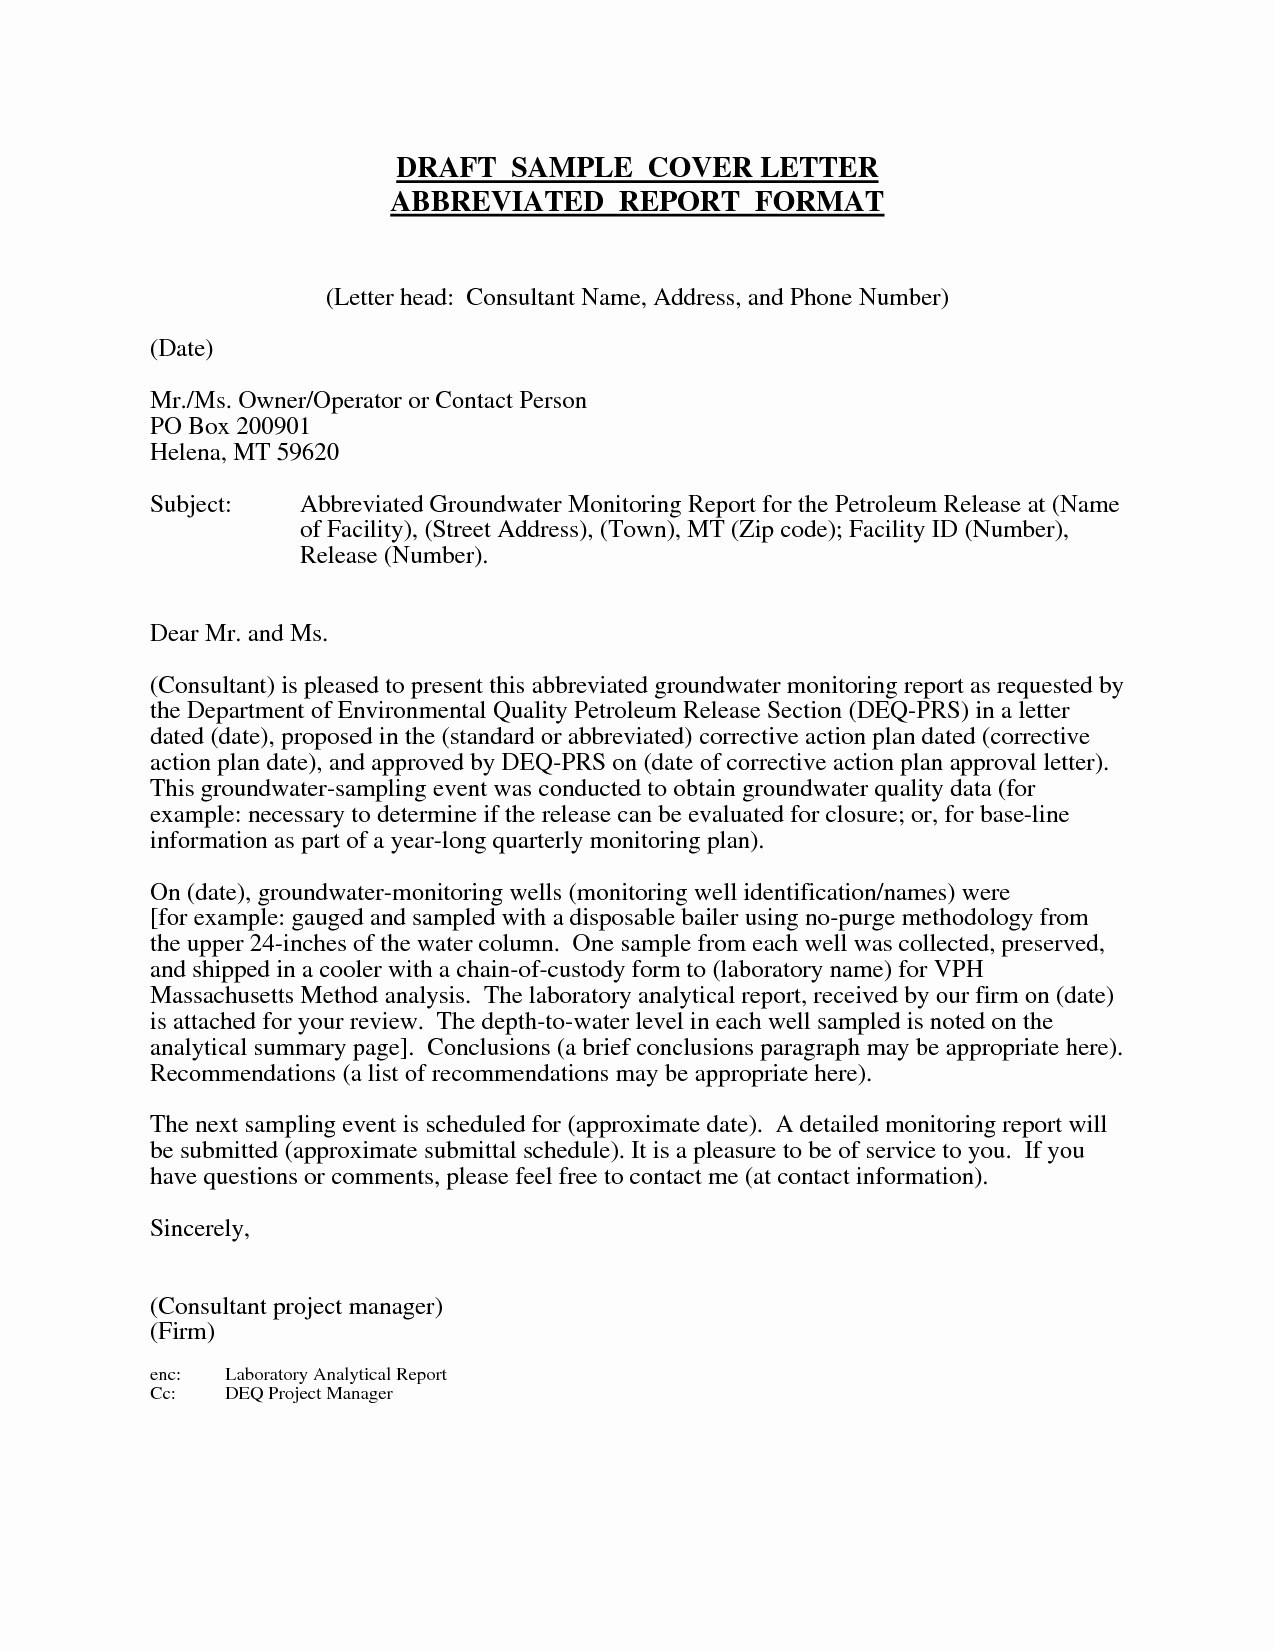 Free Cover Letter Template for Job Application - Cover Letters for Resumes Free Awesome Resume Cover Letter Template